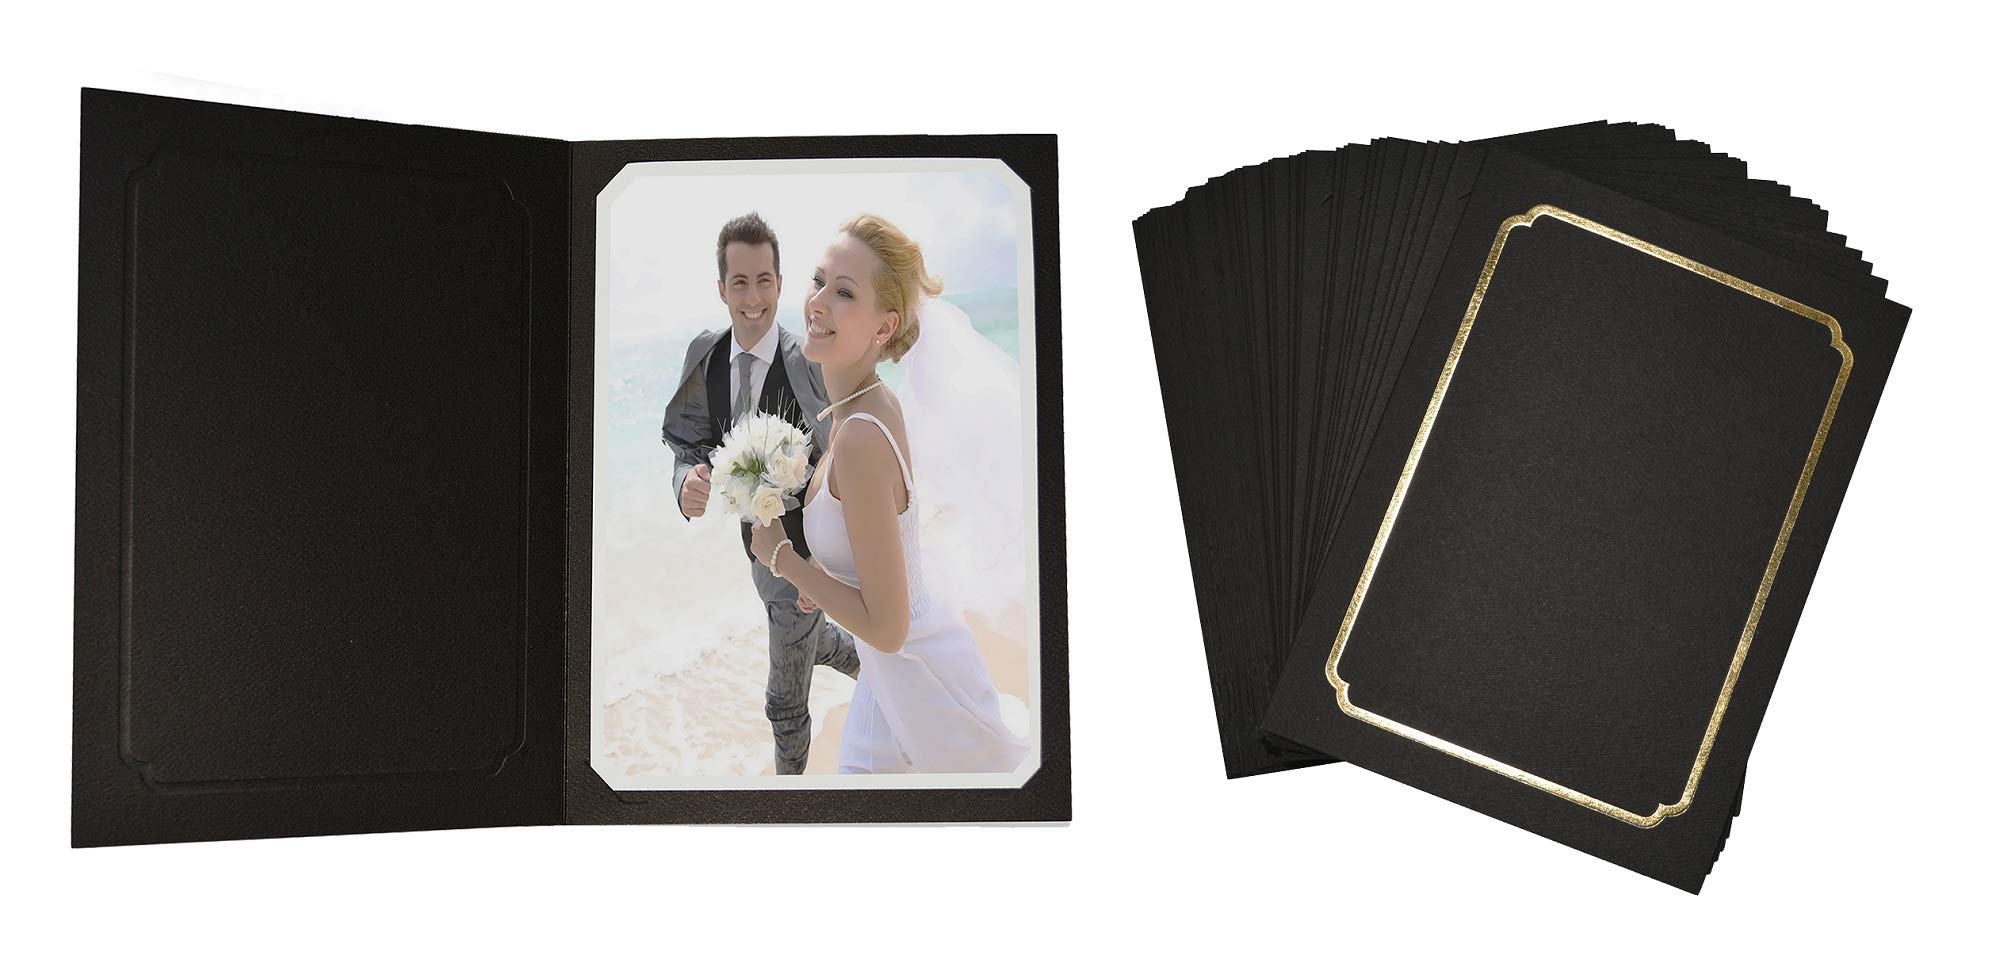 Golden State Art, Acid-Fre Photo Folders for 5X7 or 4x6 Photo,Pack of 100 Black with Gold Lining Cardboard/Paper Frames,Great for Portraits and Photos,Special Events: Graduation,Wedding by Golden State Art